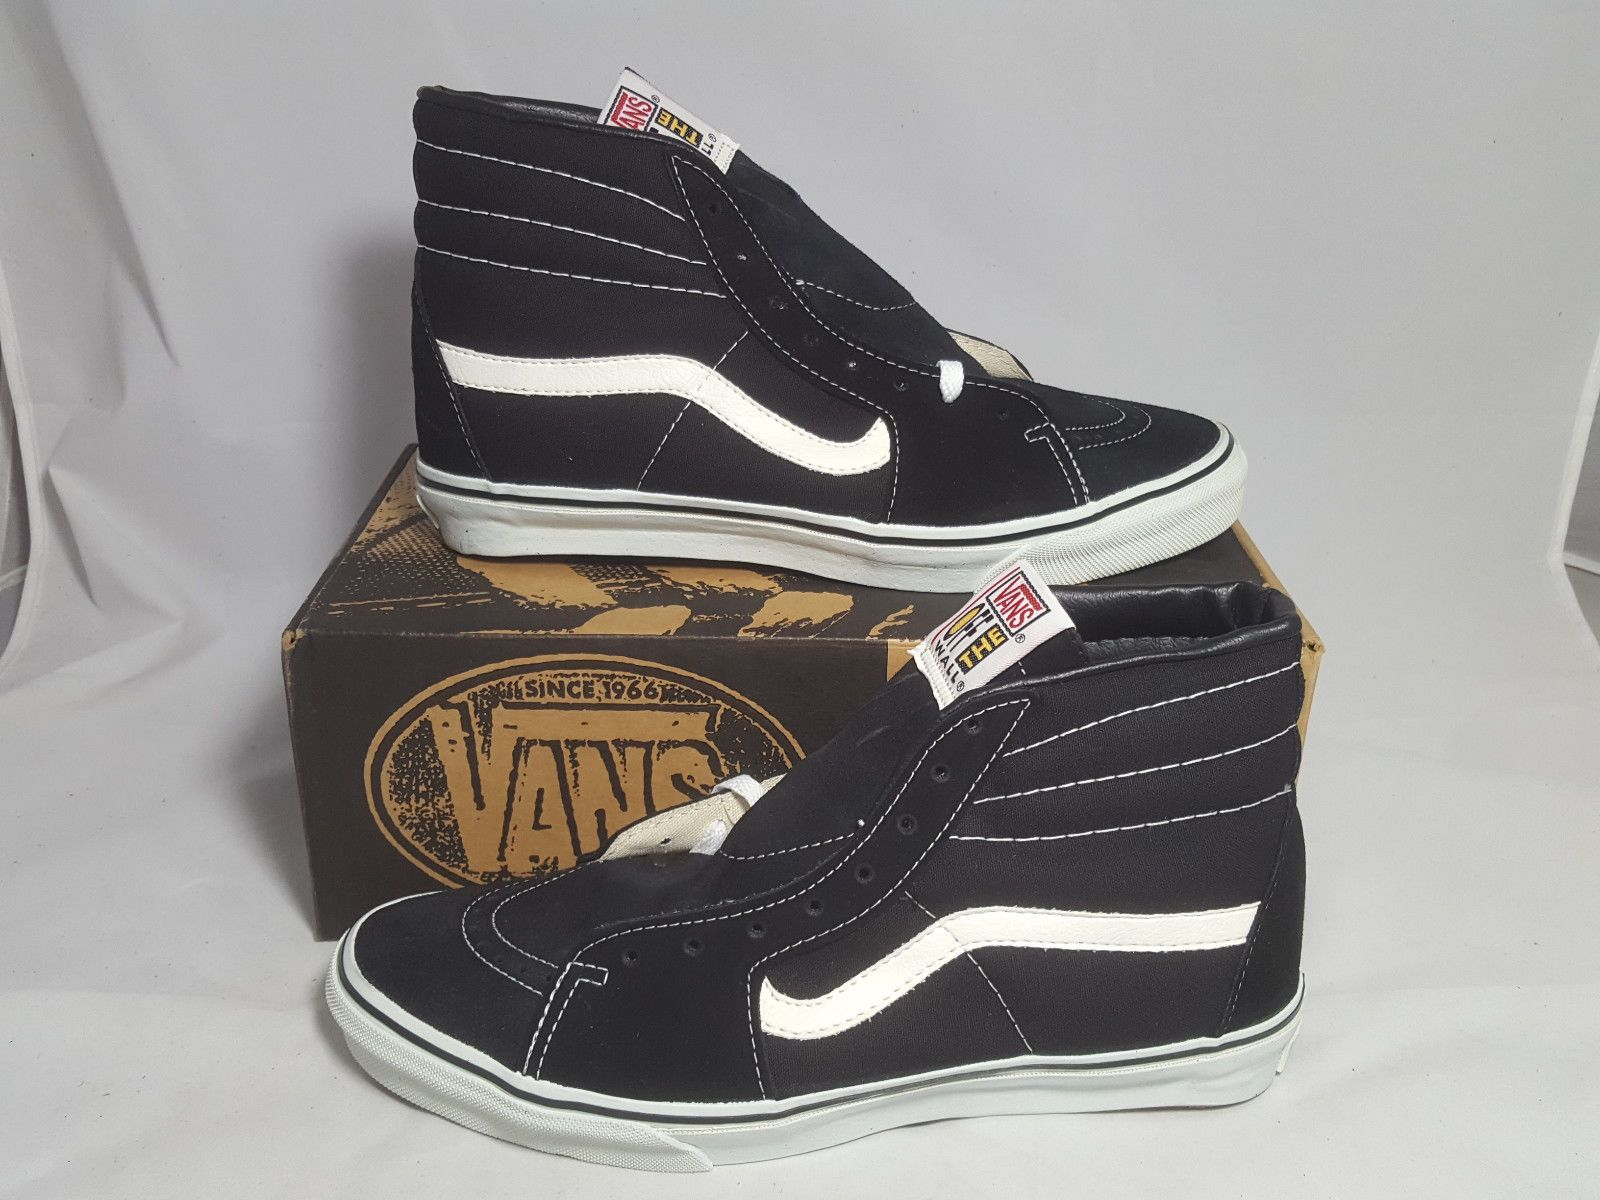 65897b45230fa7 Vintage Vans shoes SK8 HI BLACK made USA Men s 11.5 NOS Old Skool BMX skate